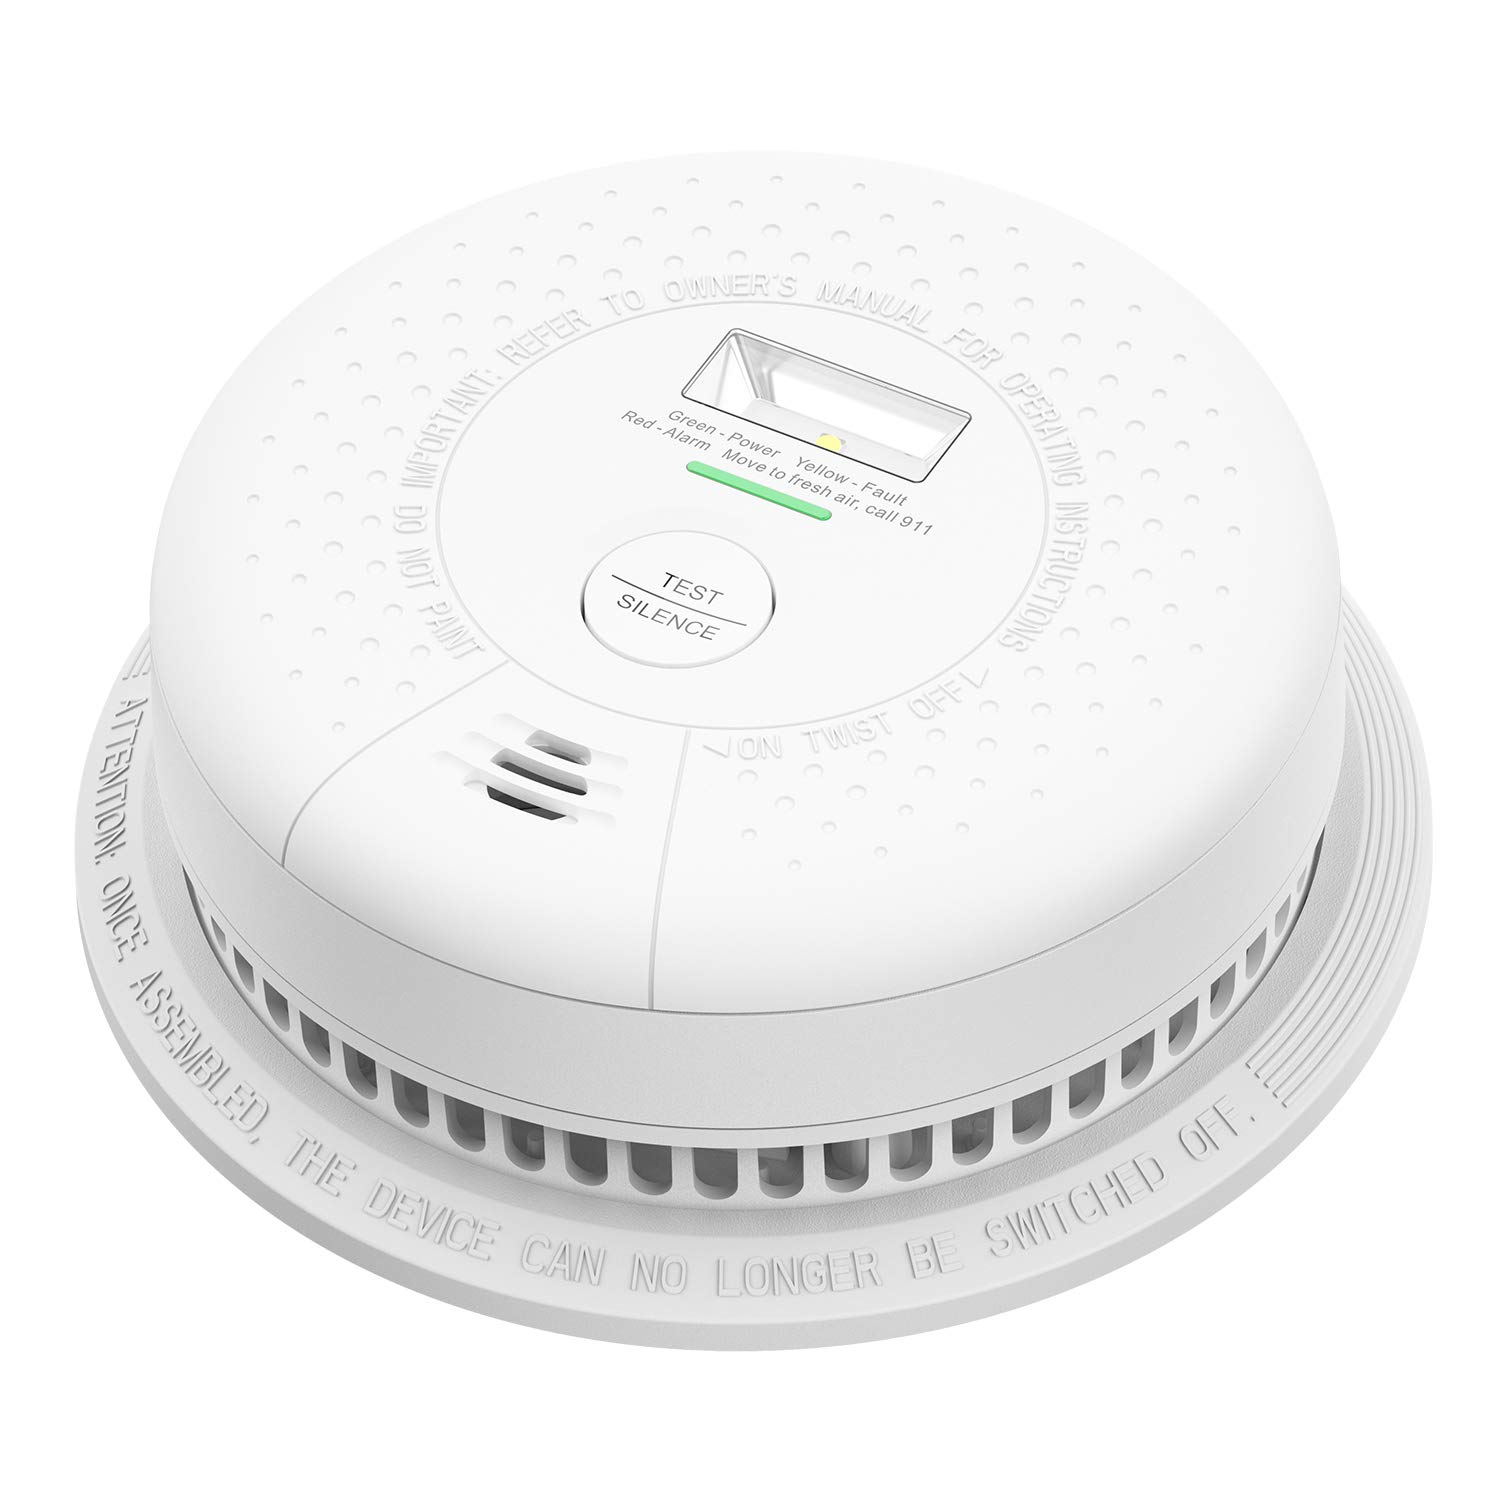 X-Sense Smoke Detector 10 Year Battery Operated, with Escape Light, UL 217 Standard Certified, Better Photoelectric Sensor for Preventing False Alarms, Wireless Installation by X-Sense